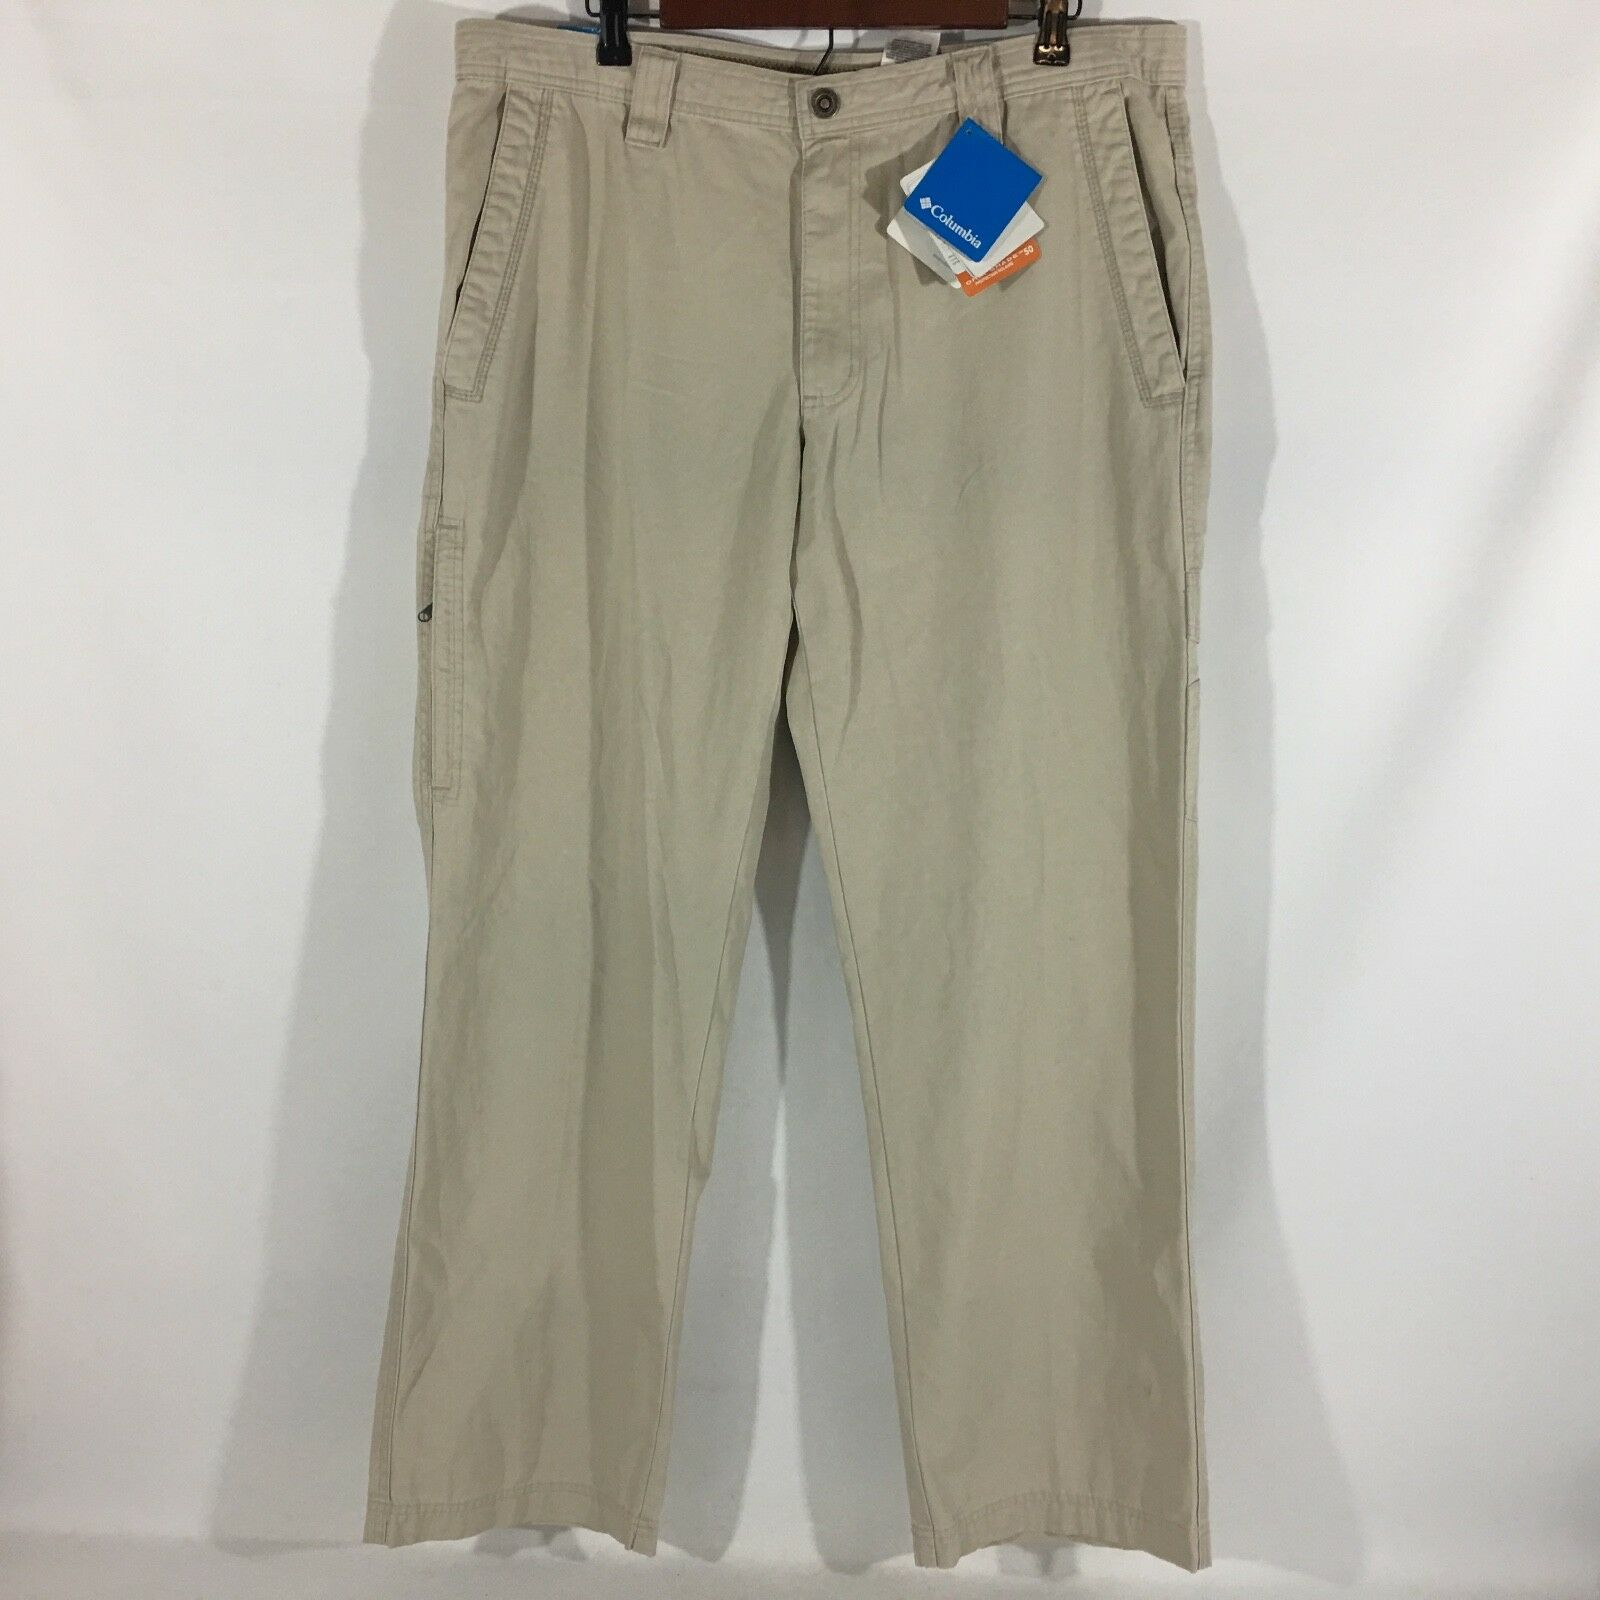 Columbia 100% Cotton Stone Khaki Omni-Shield Men's Pants Waist 36 Inseam 32